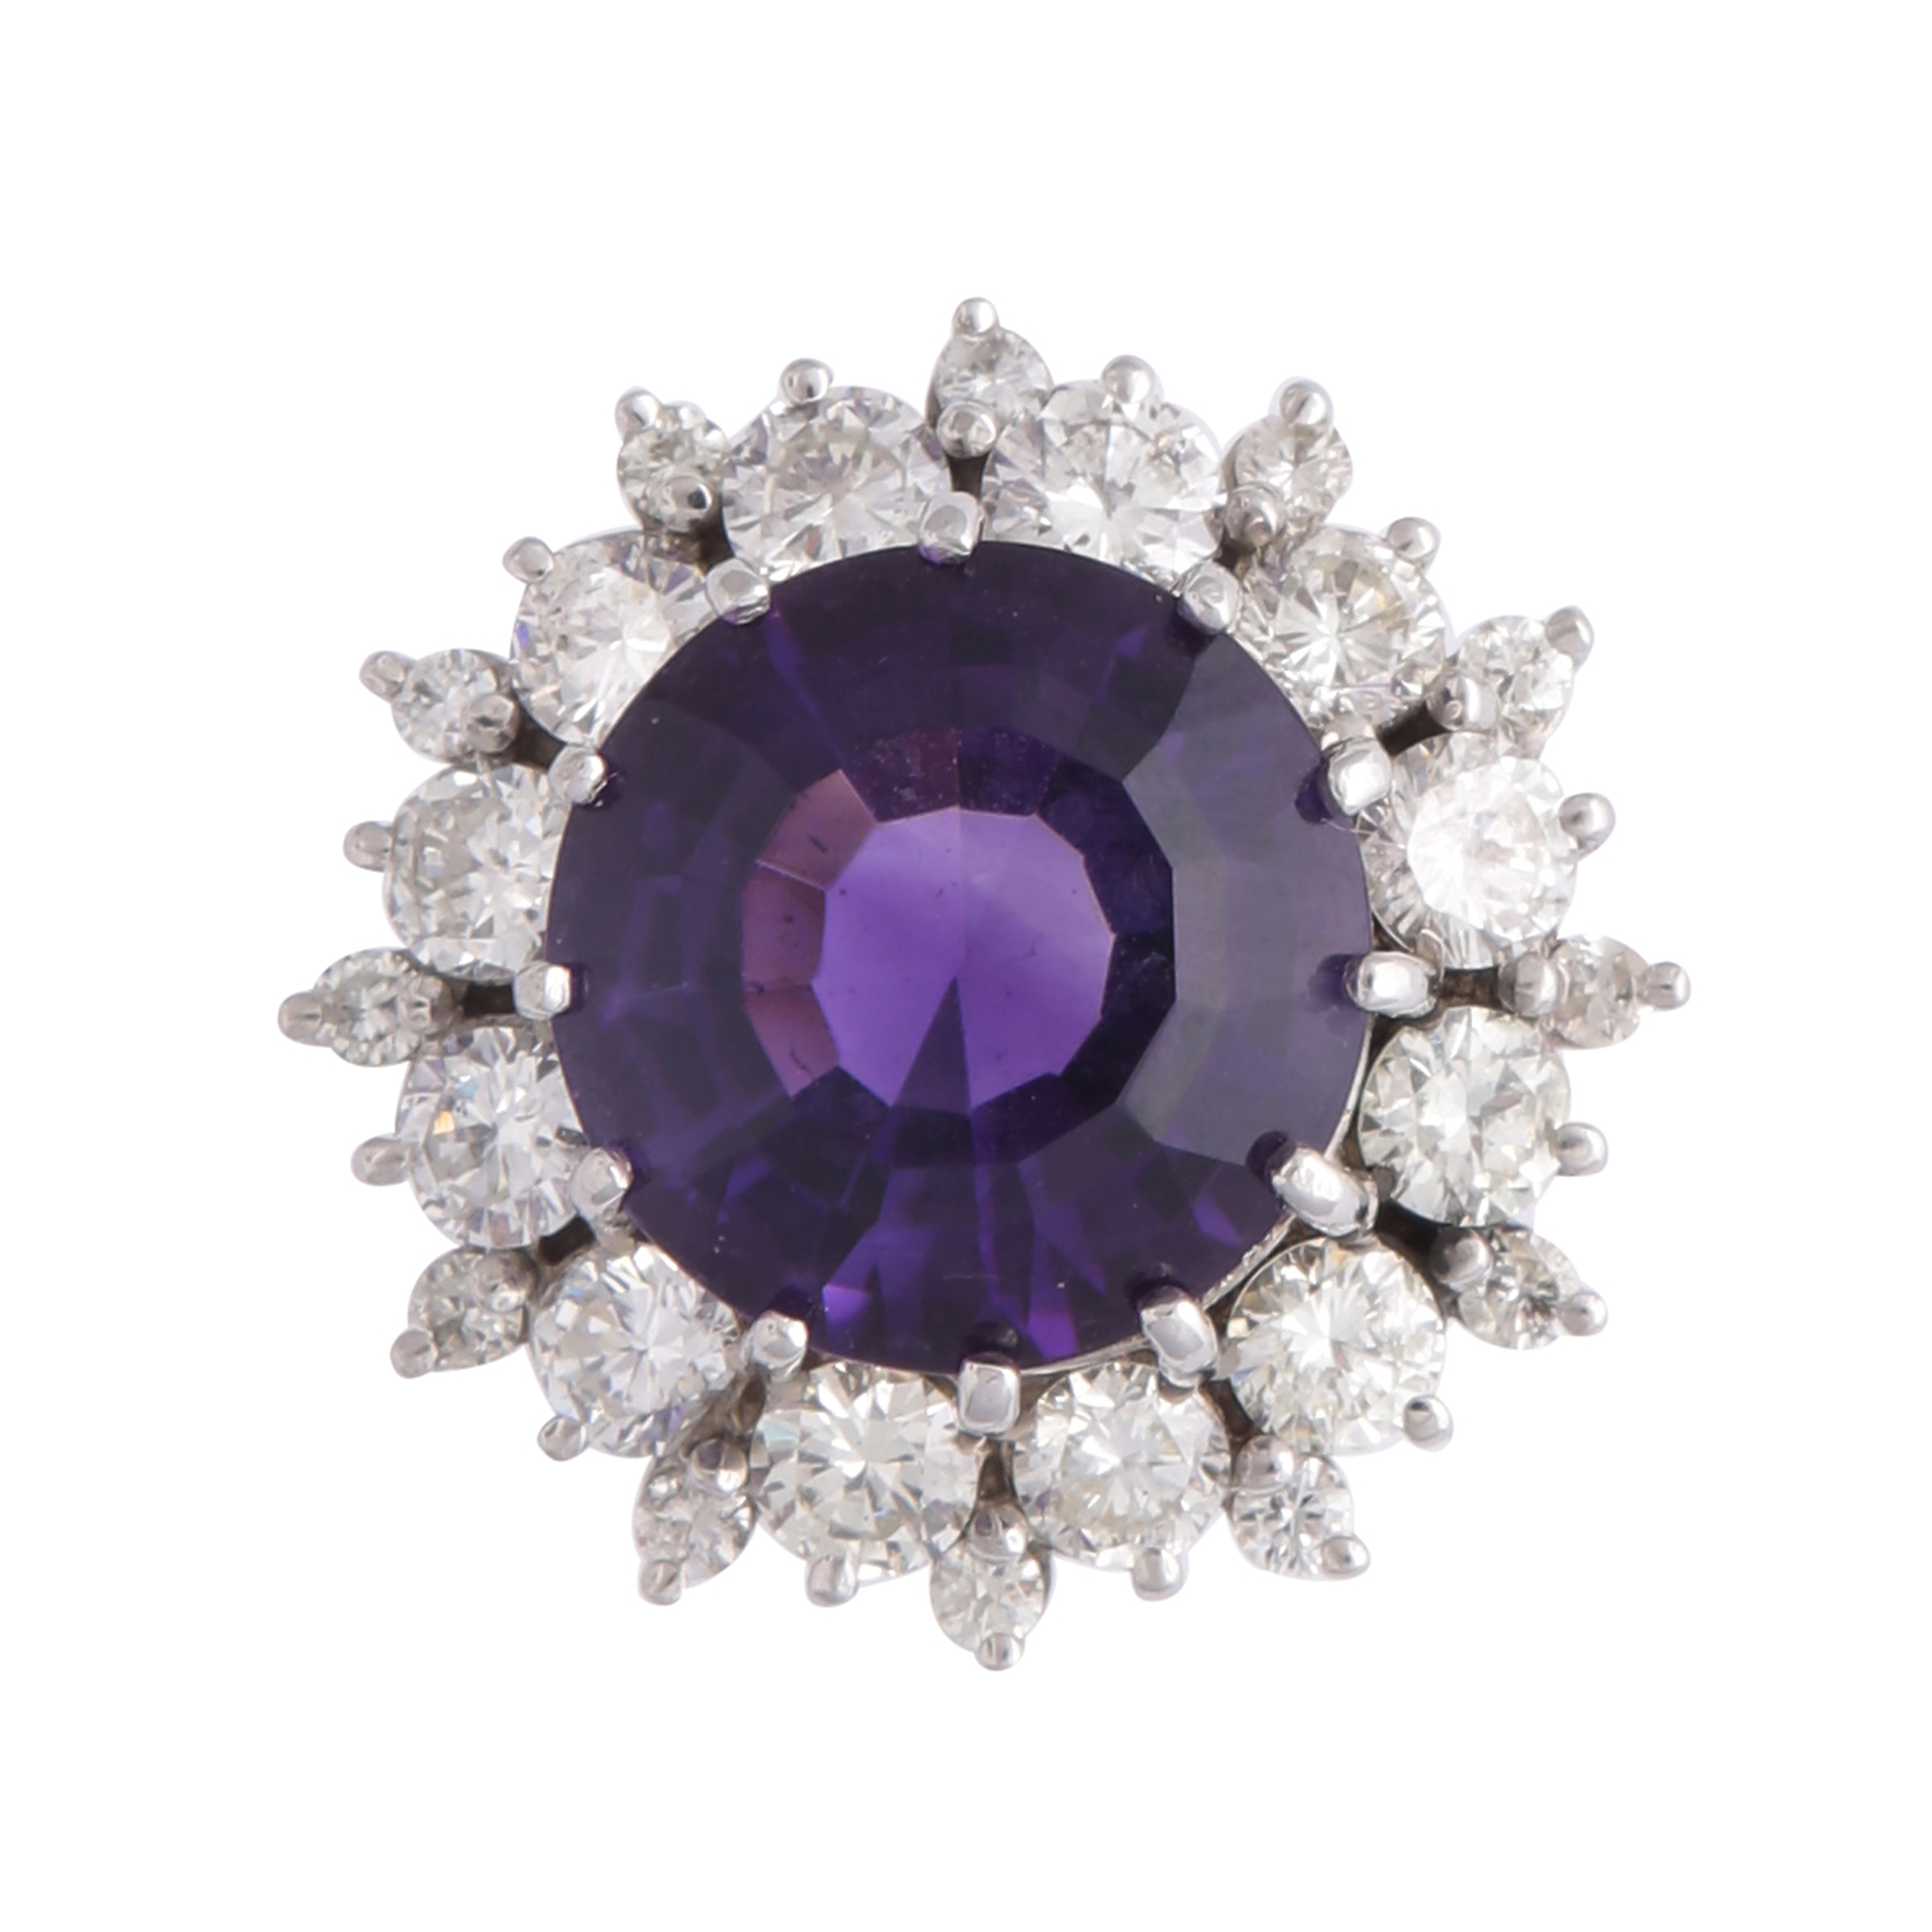 Los 208 - A magnificent amethyst and diamond cluster dress ring in white gold or platinum, the large,